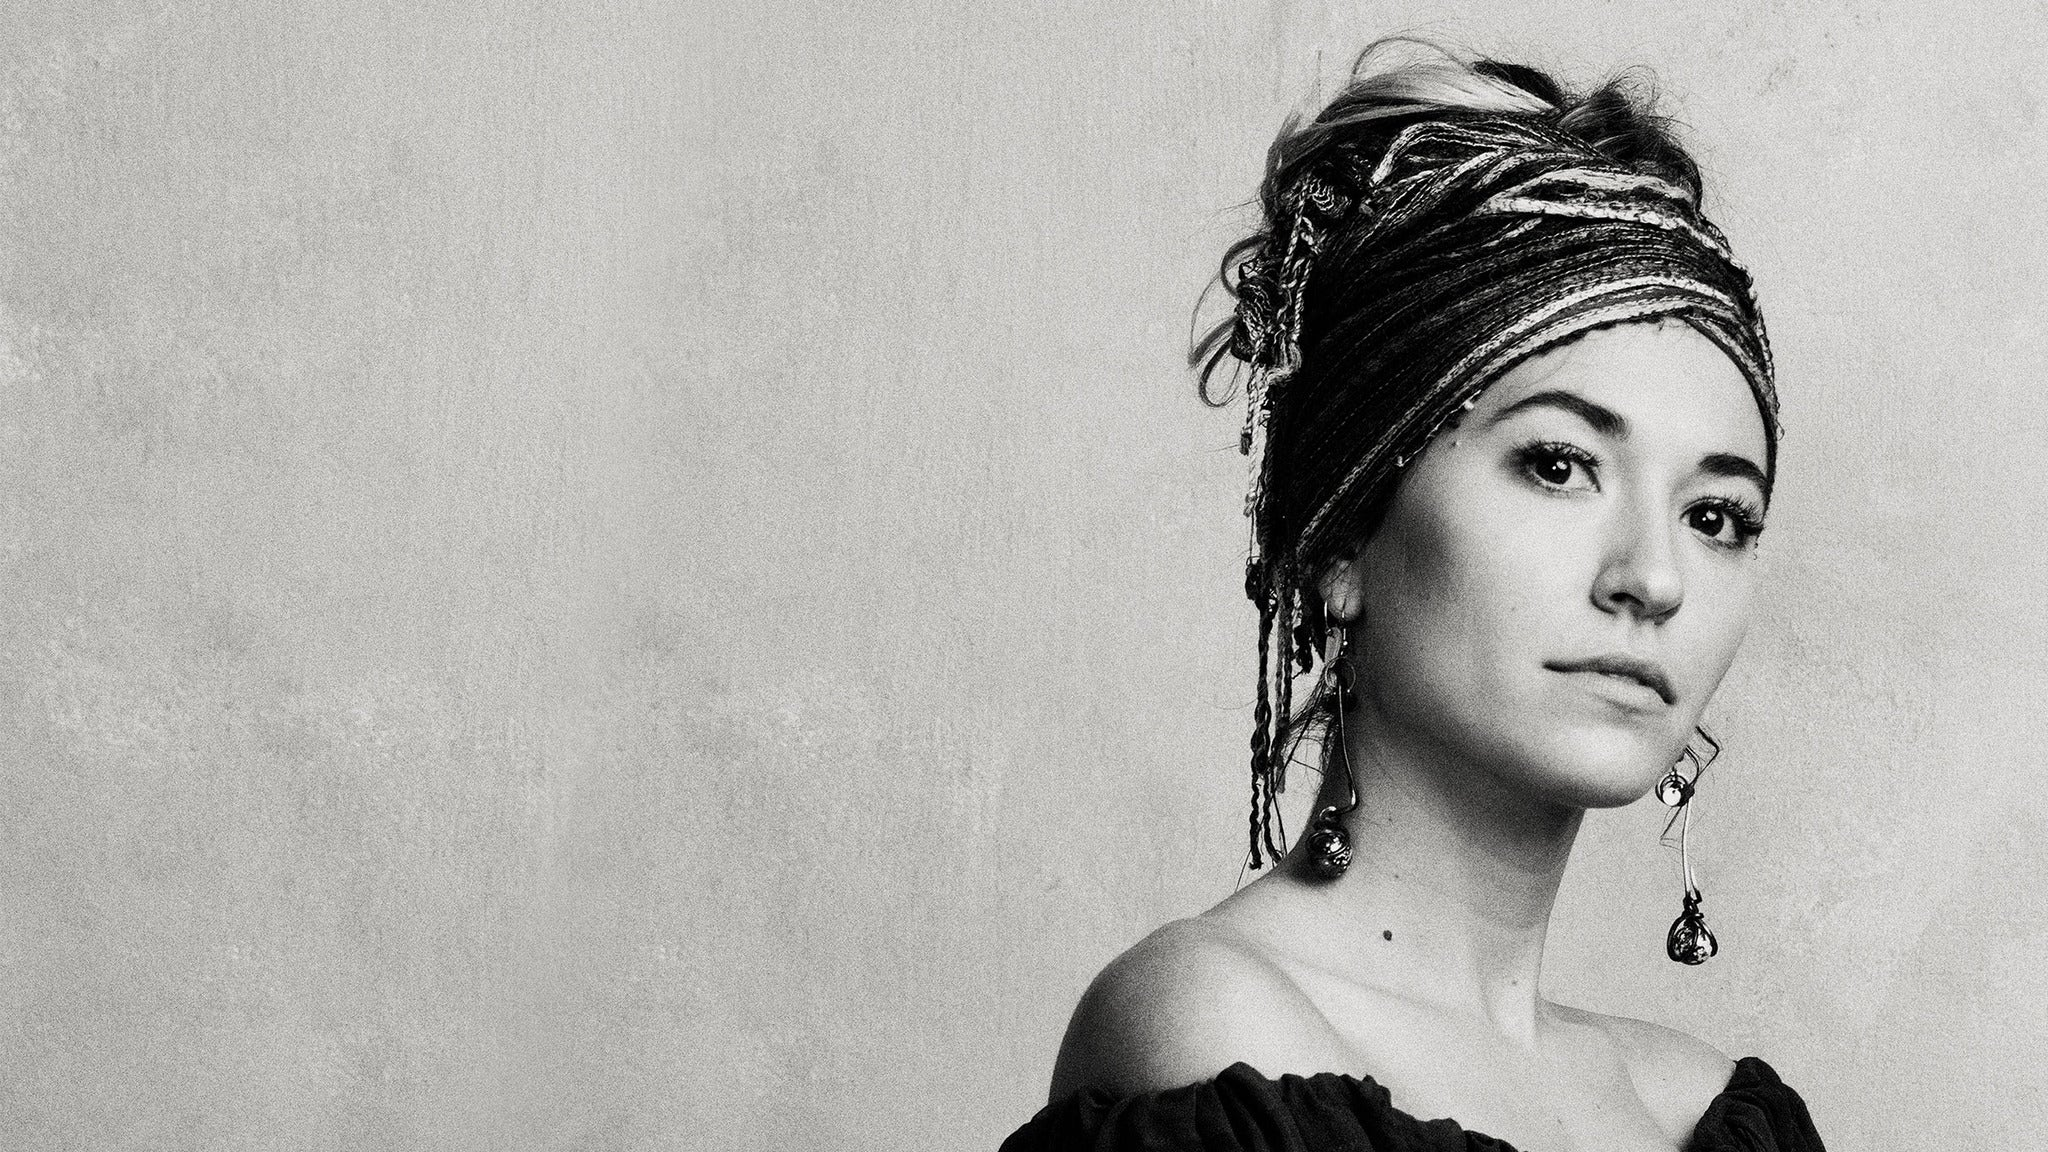 Lauren Daigle at Washington State Fair